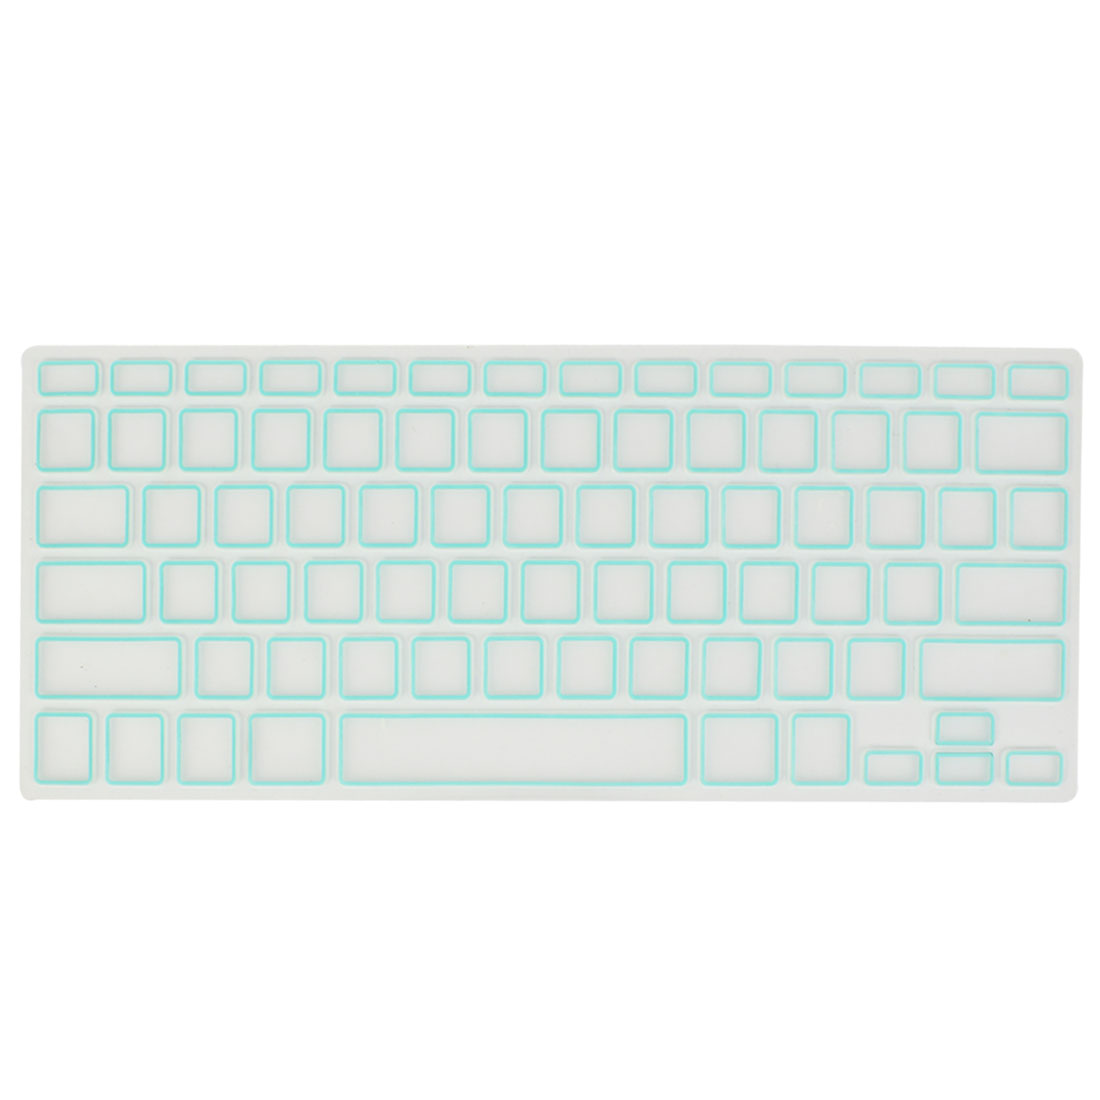 Baby Blue Clear Soft Film PC Keyboard Skin Protector for Apple MacBook Air 13.3""